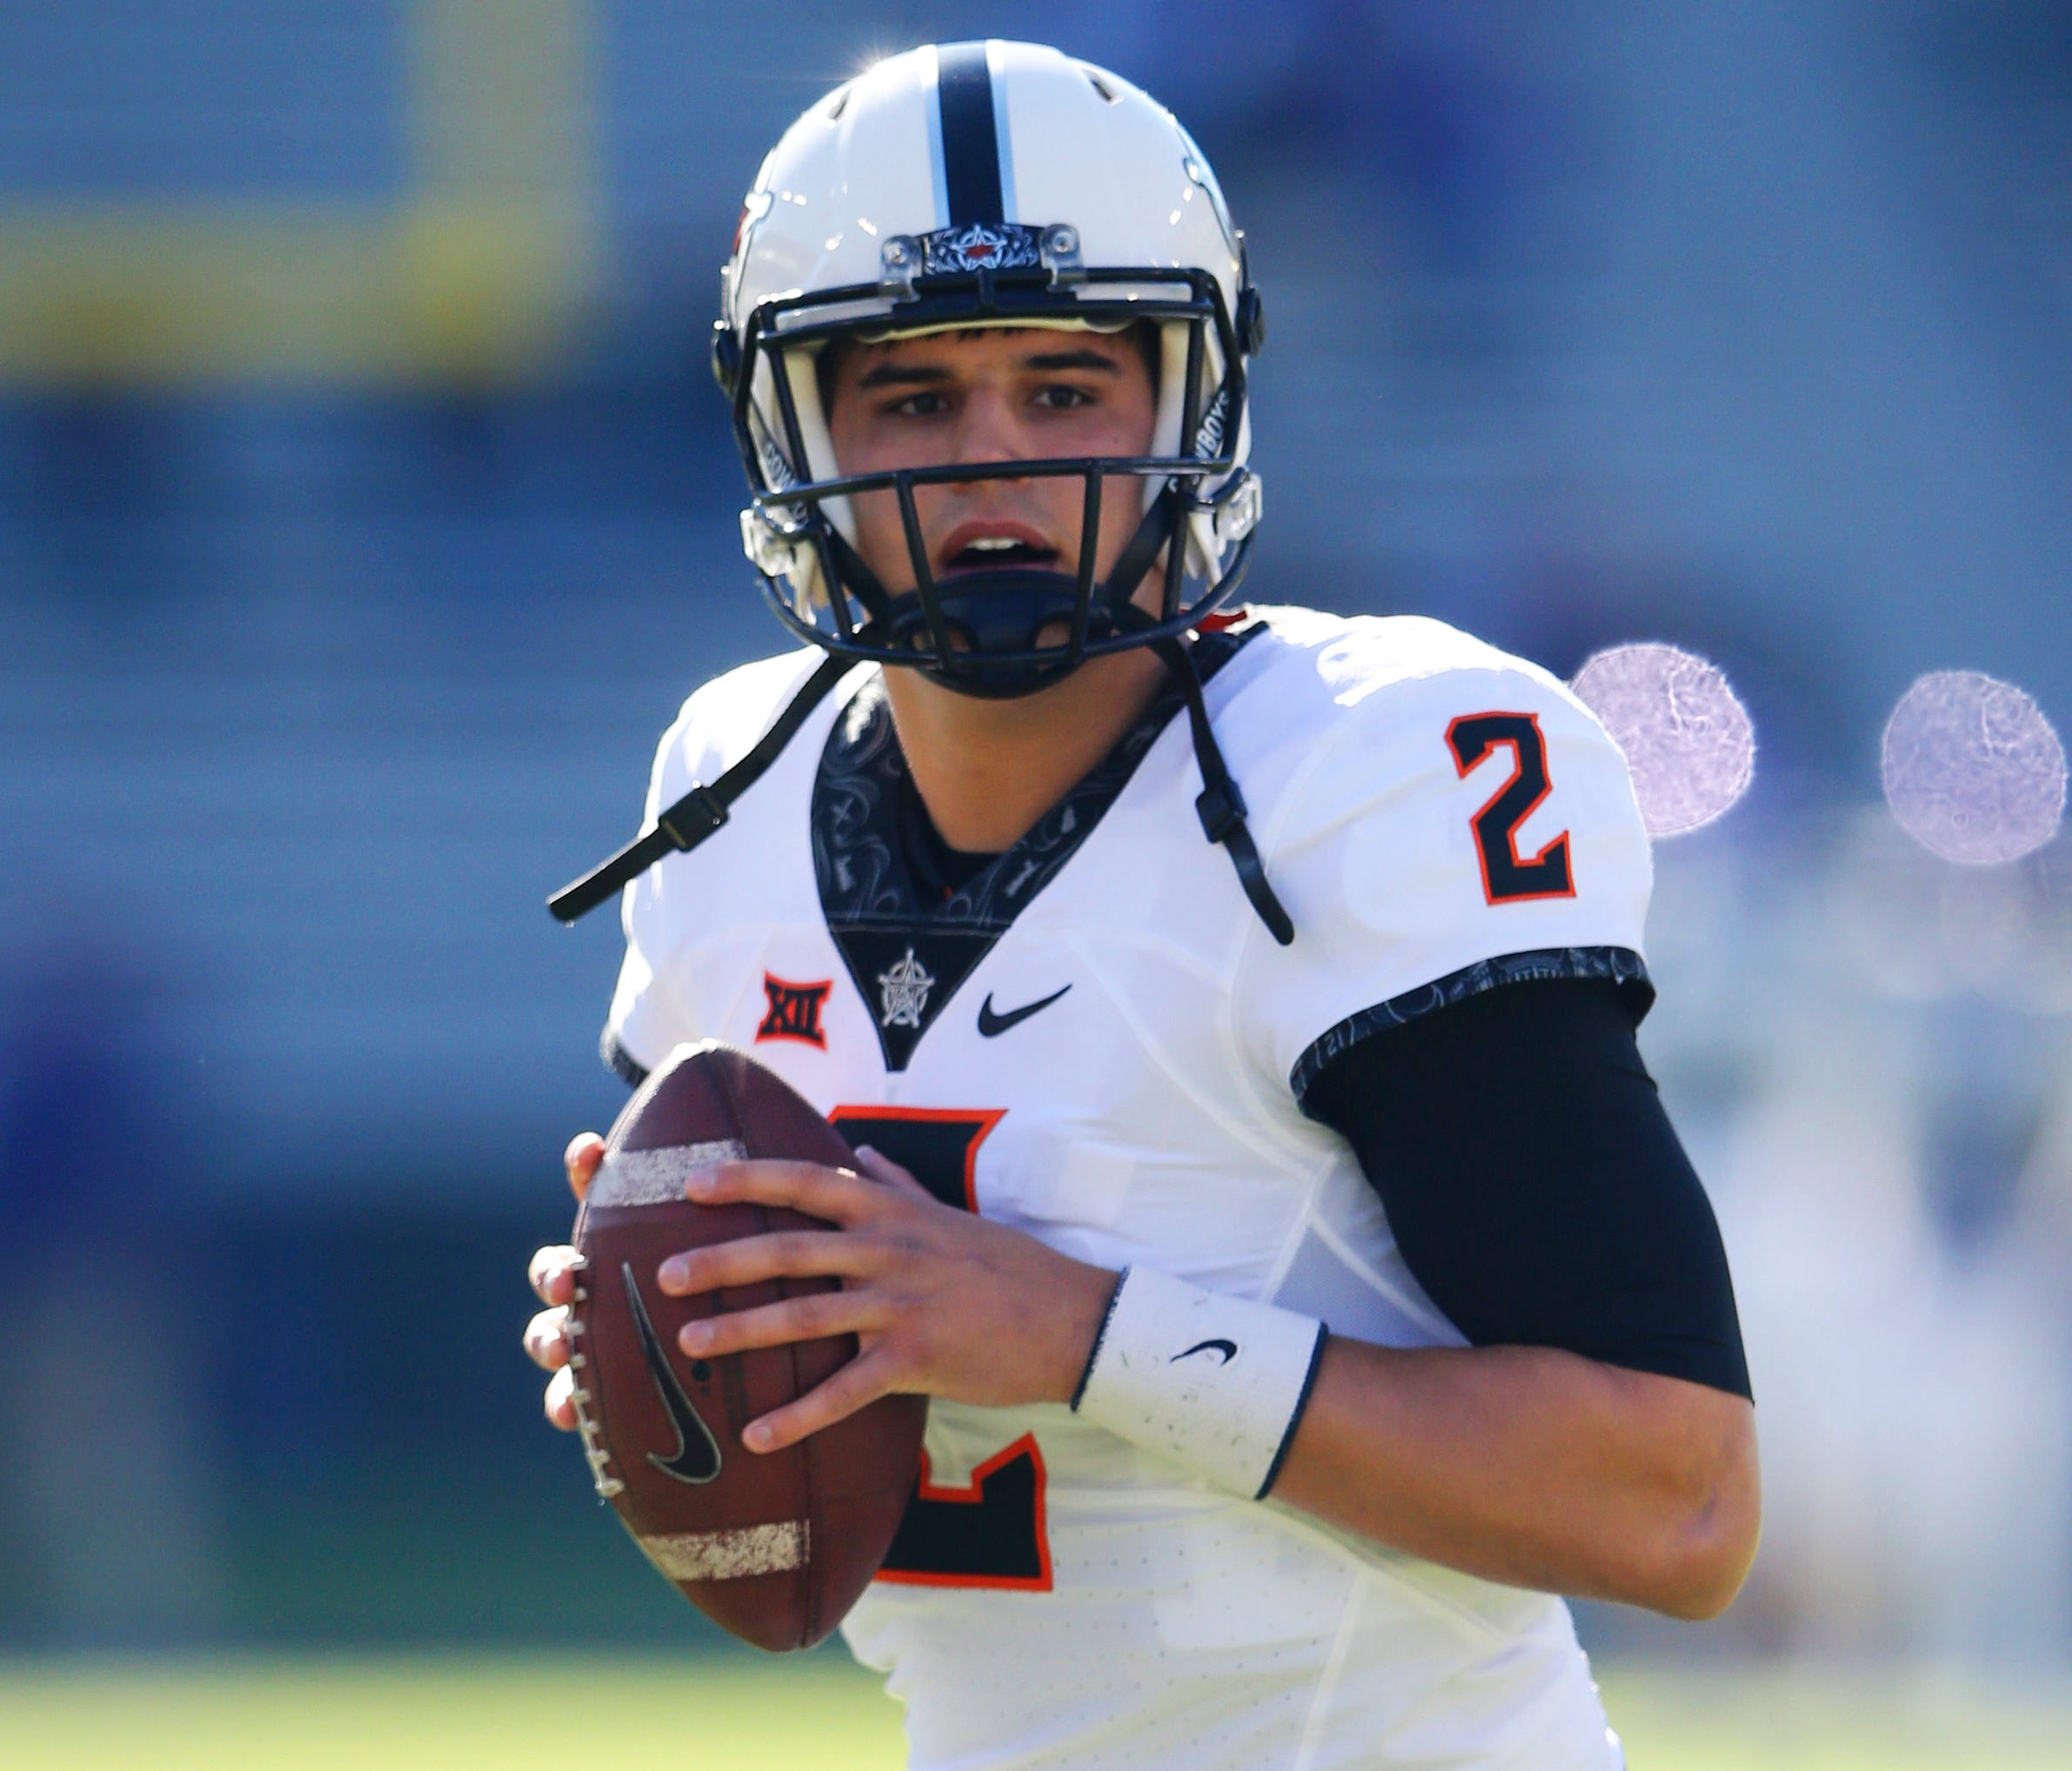 Oklahoma State Cowboys quarterback Mason Rudolph (2) throws before the game against the TCU Horned Frogs at Amon G. Carter Stadium.